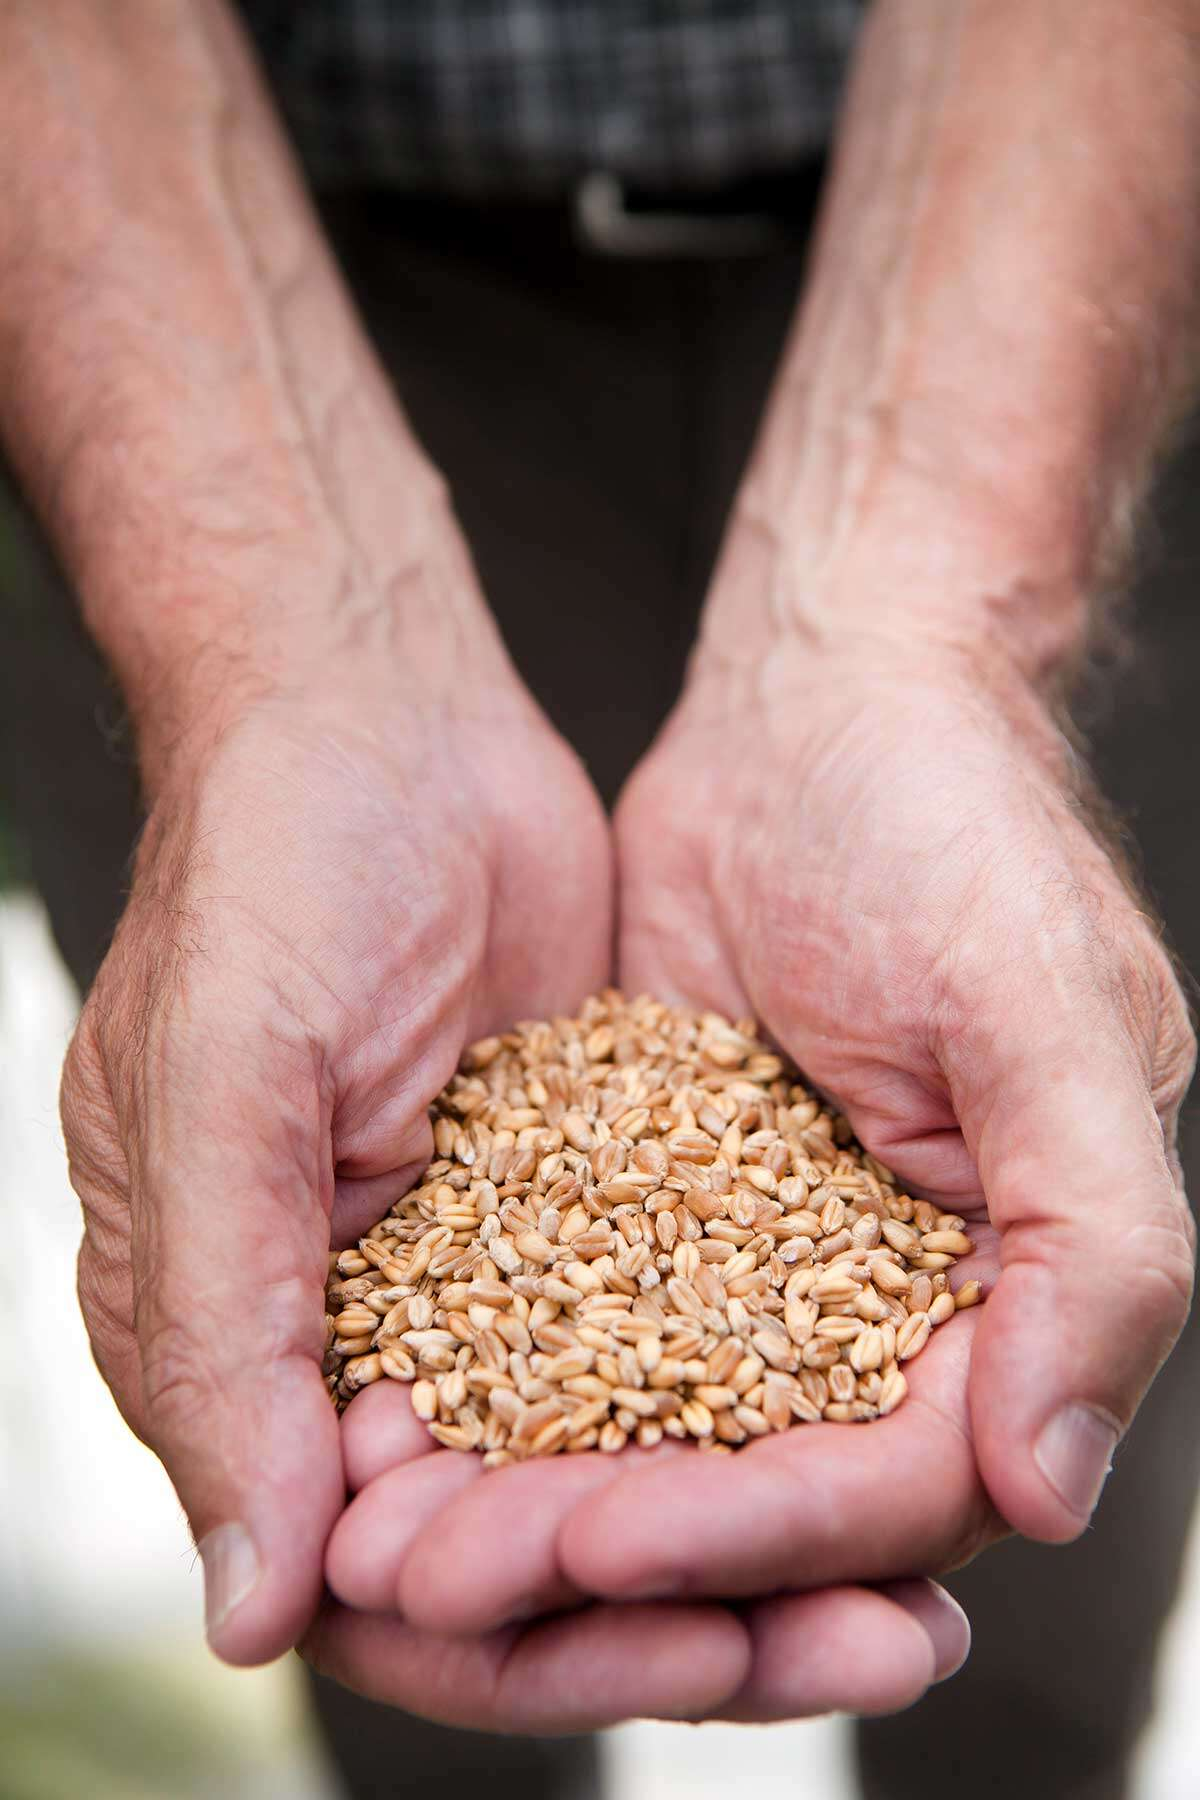 Hands holding grain